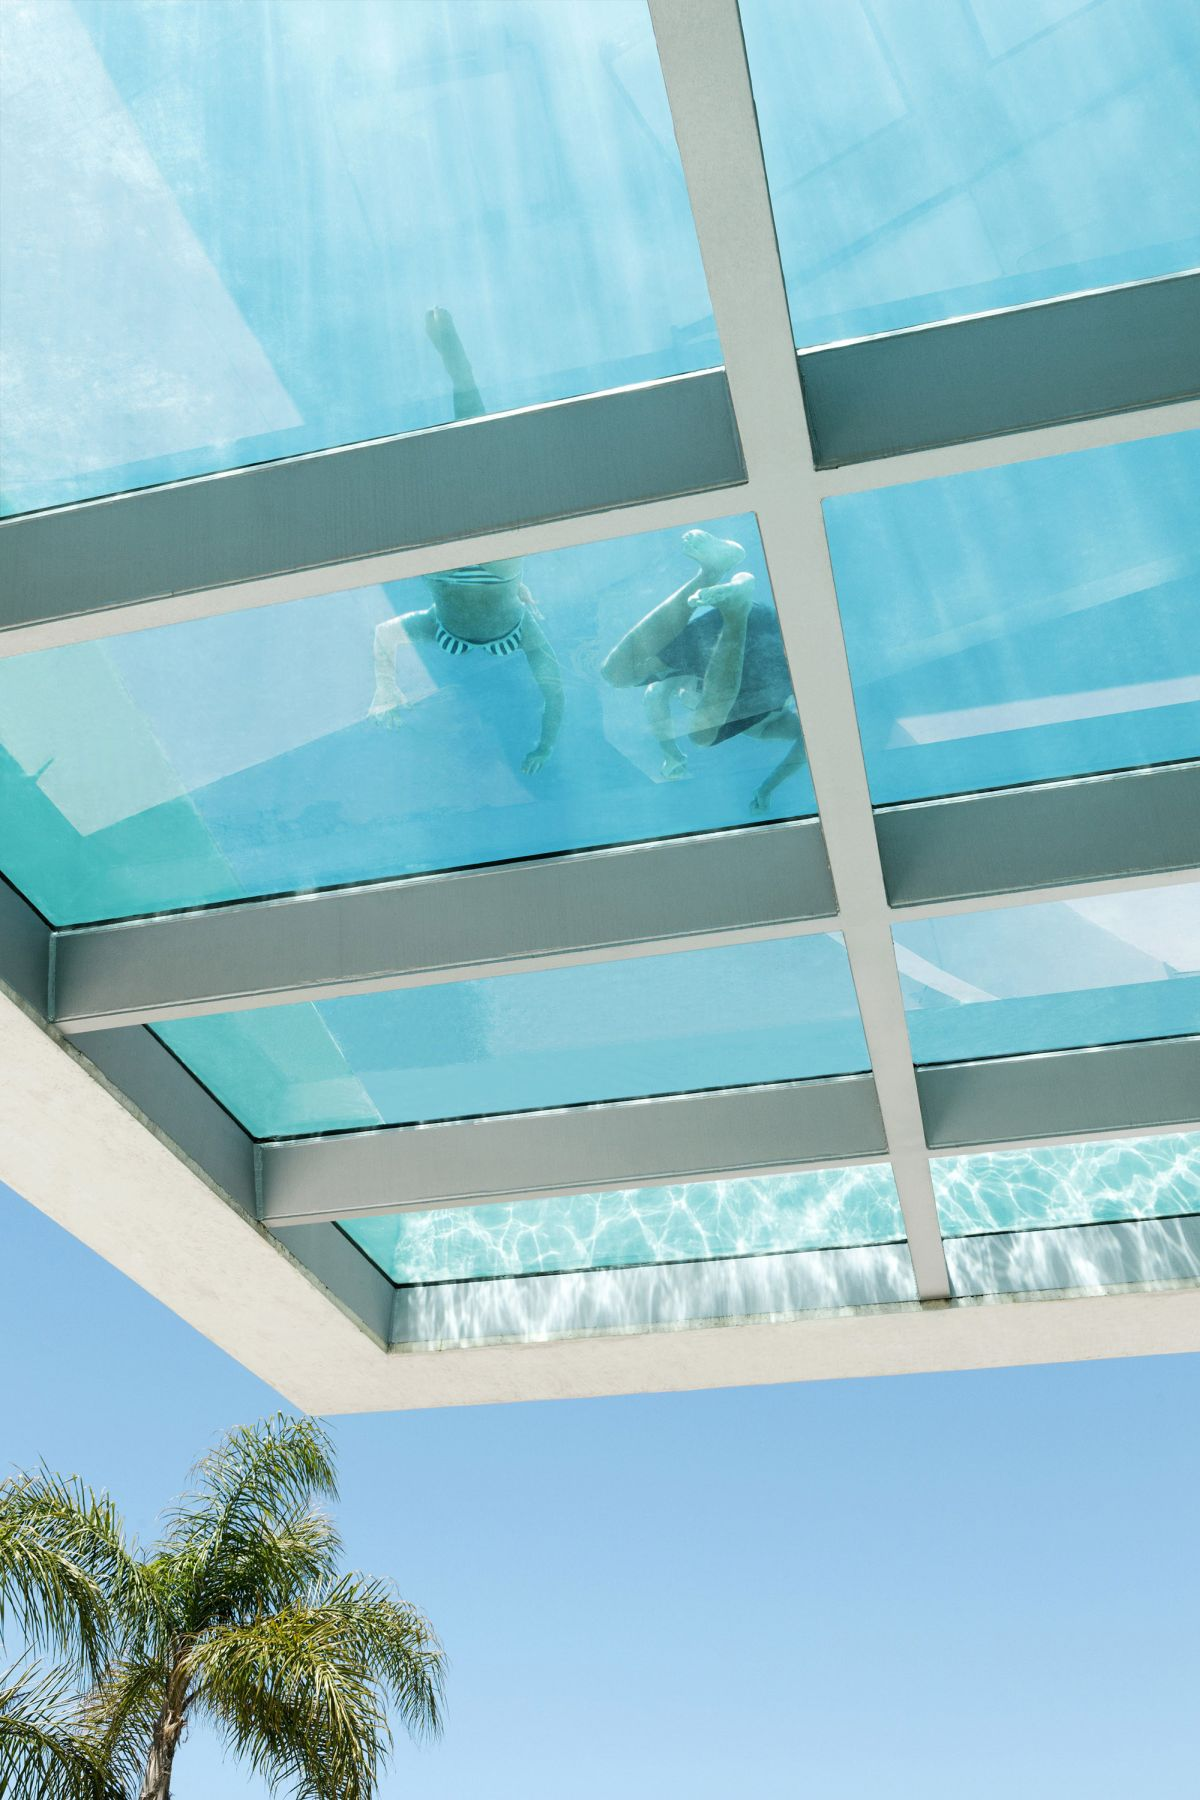 Piscina Marbella See Through Swimming Pools Reveal A World Full Of Surprises